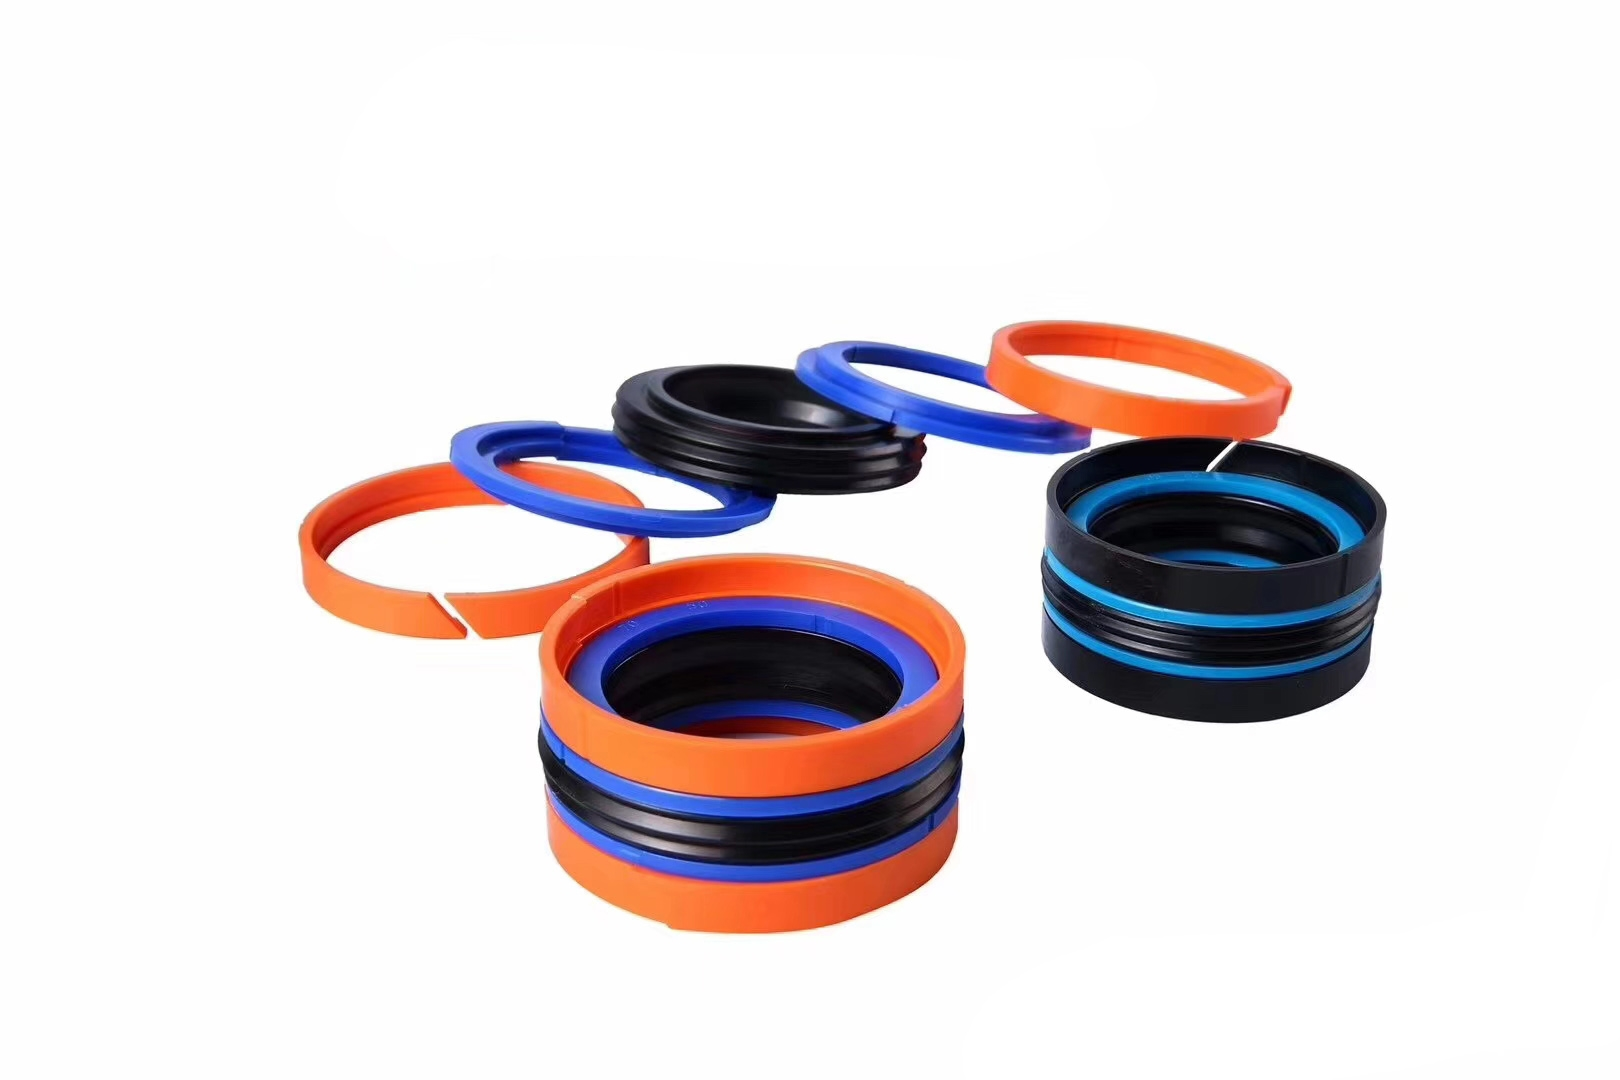 Piston Seals or Piston Rings